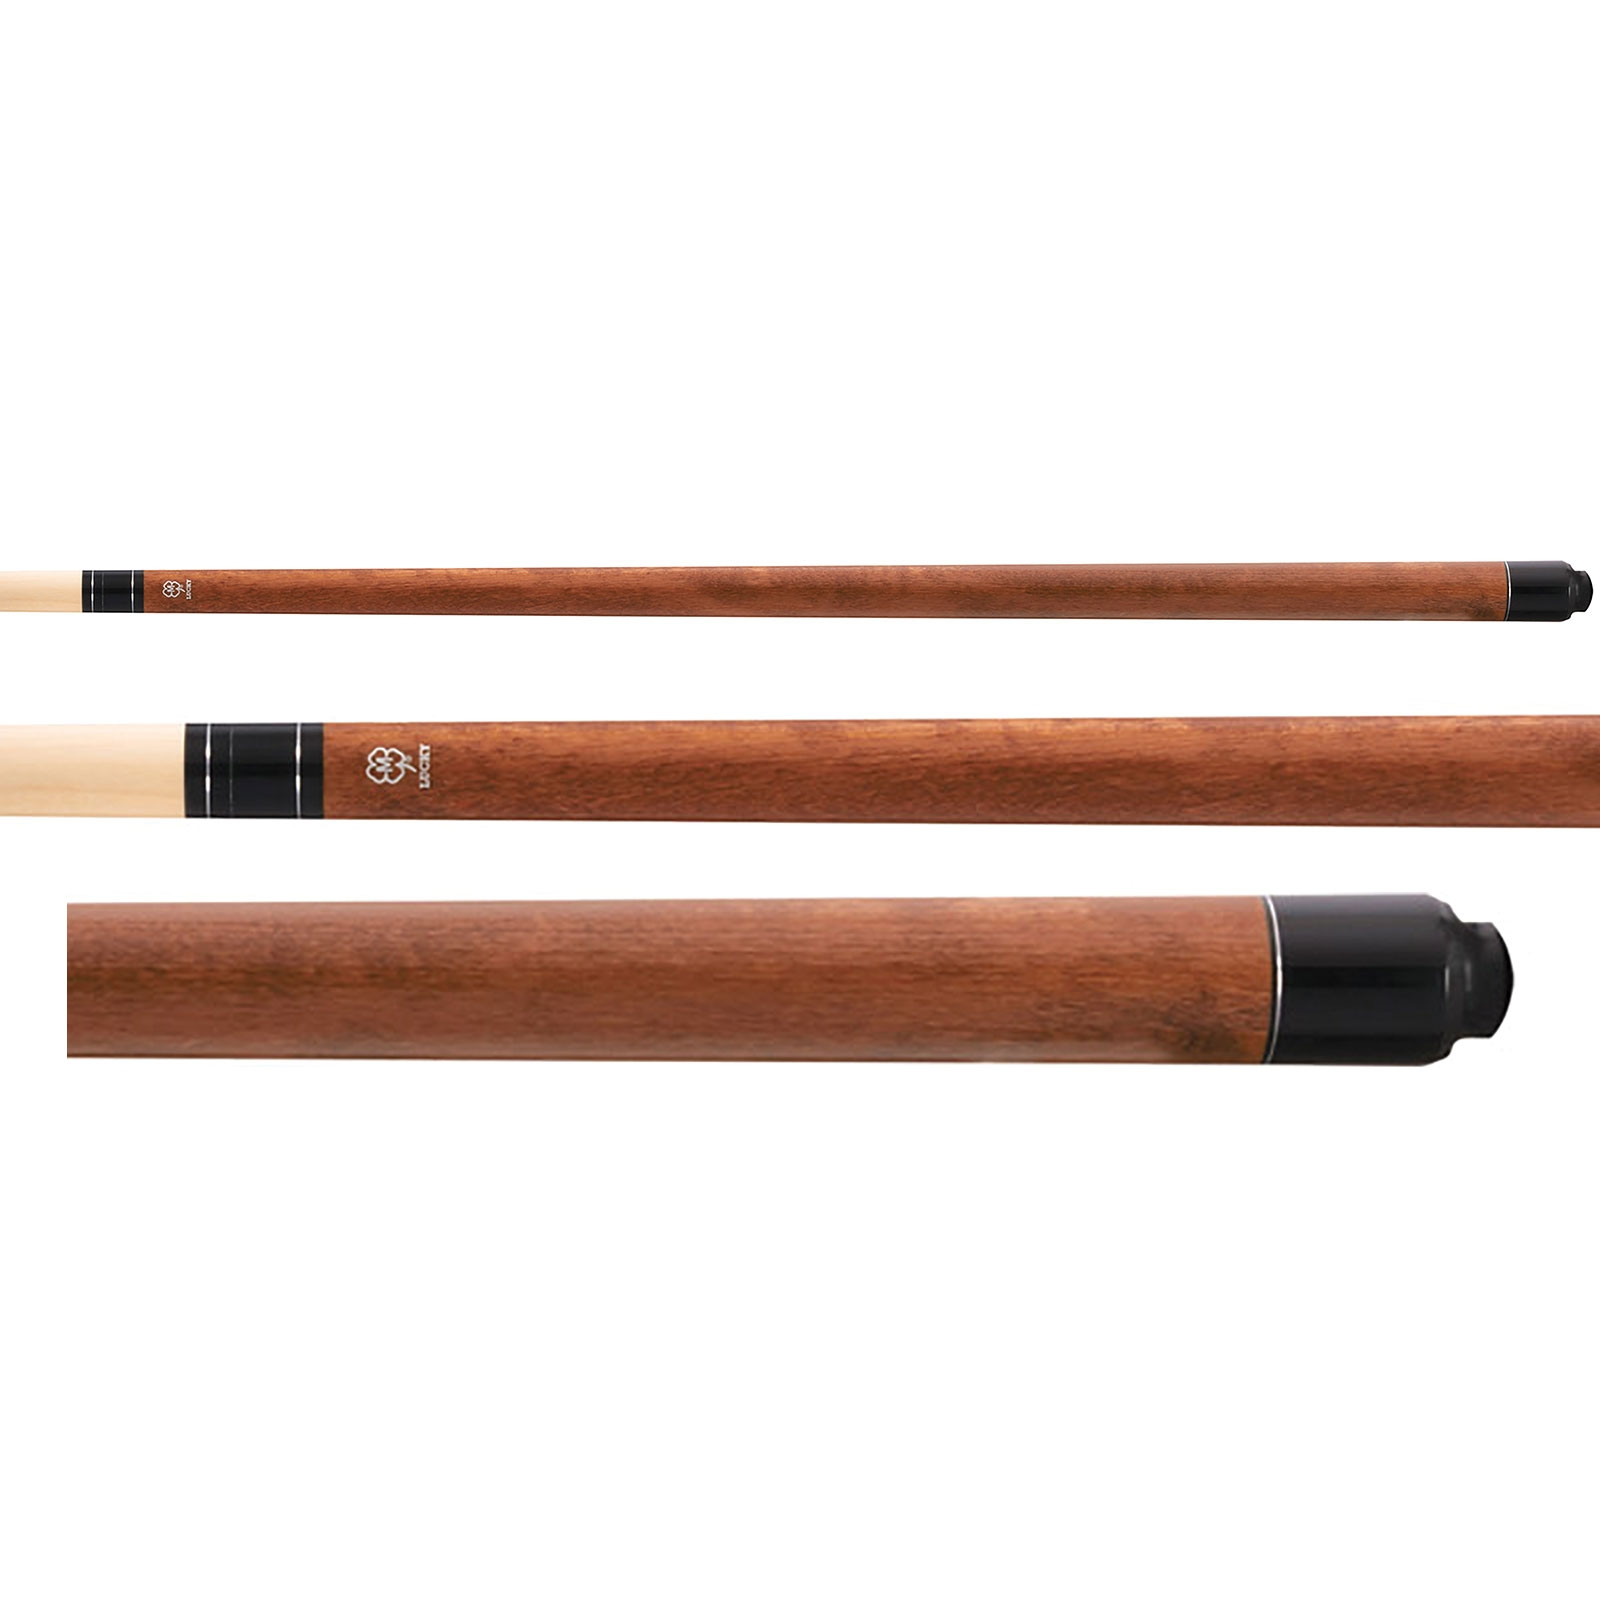 McDermott Lucky L8 Pool Cue w// FREE Shipping